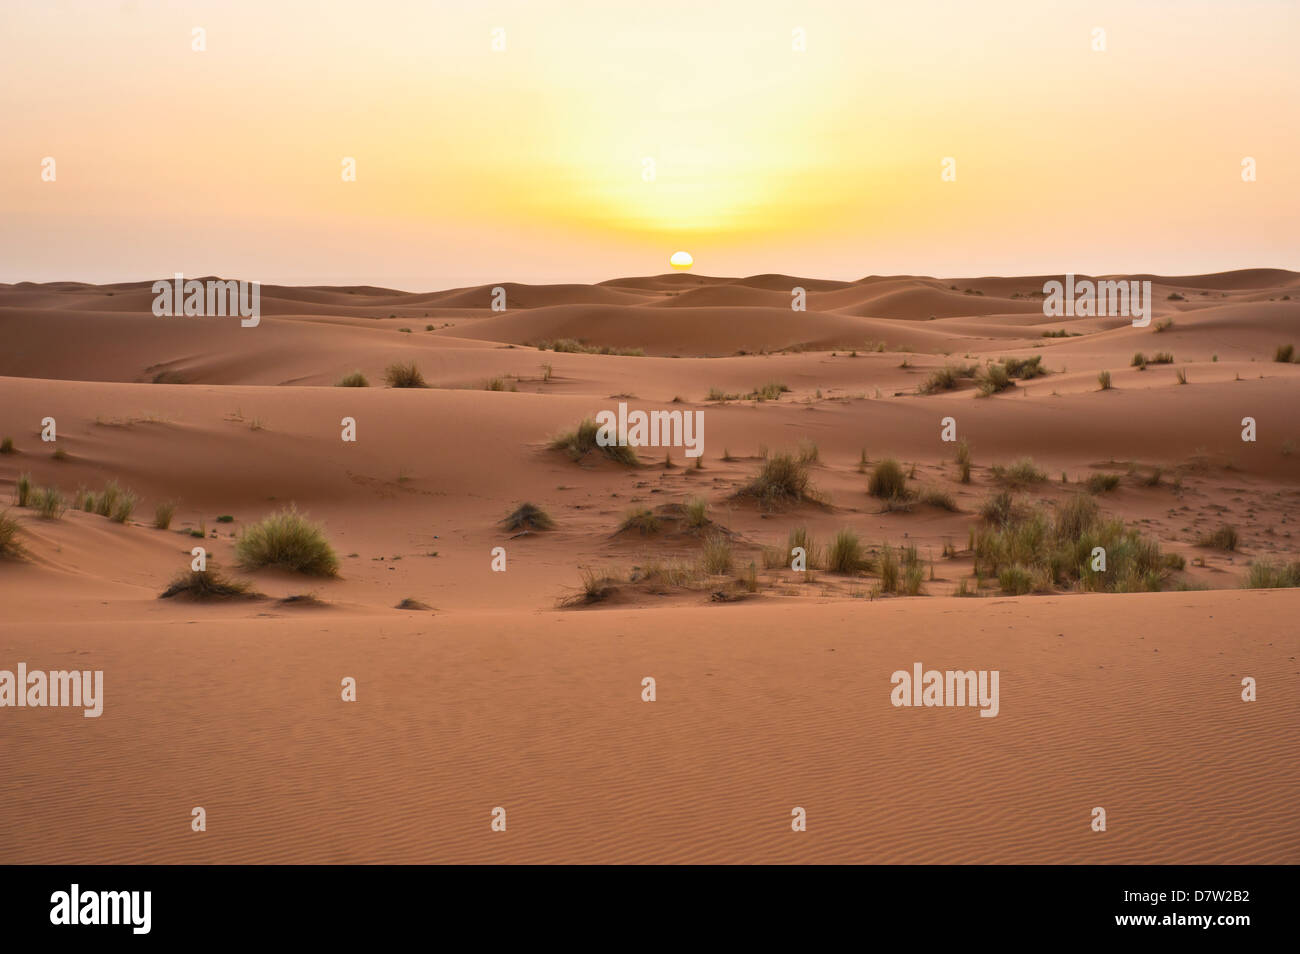 Erg Chebbi dunes at sunrise, Sahara Desert near Merzouga, Morocco, North Africa - Stock Image